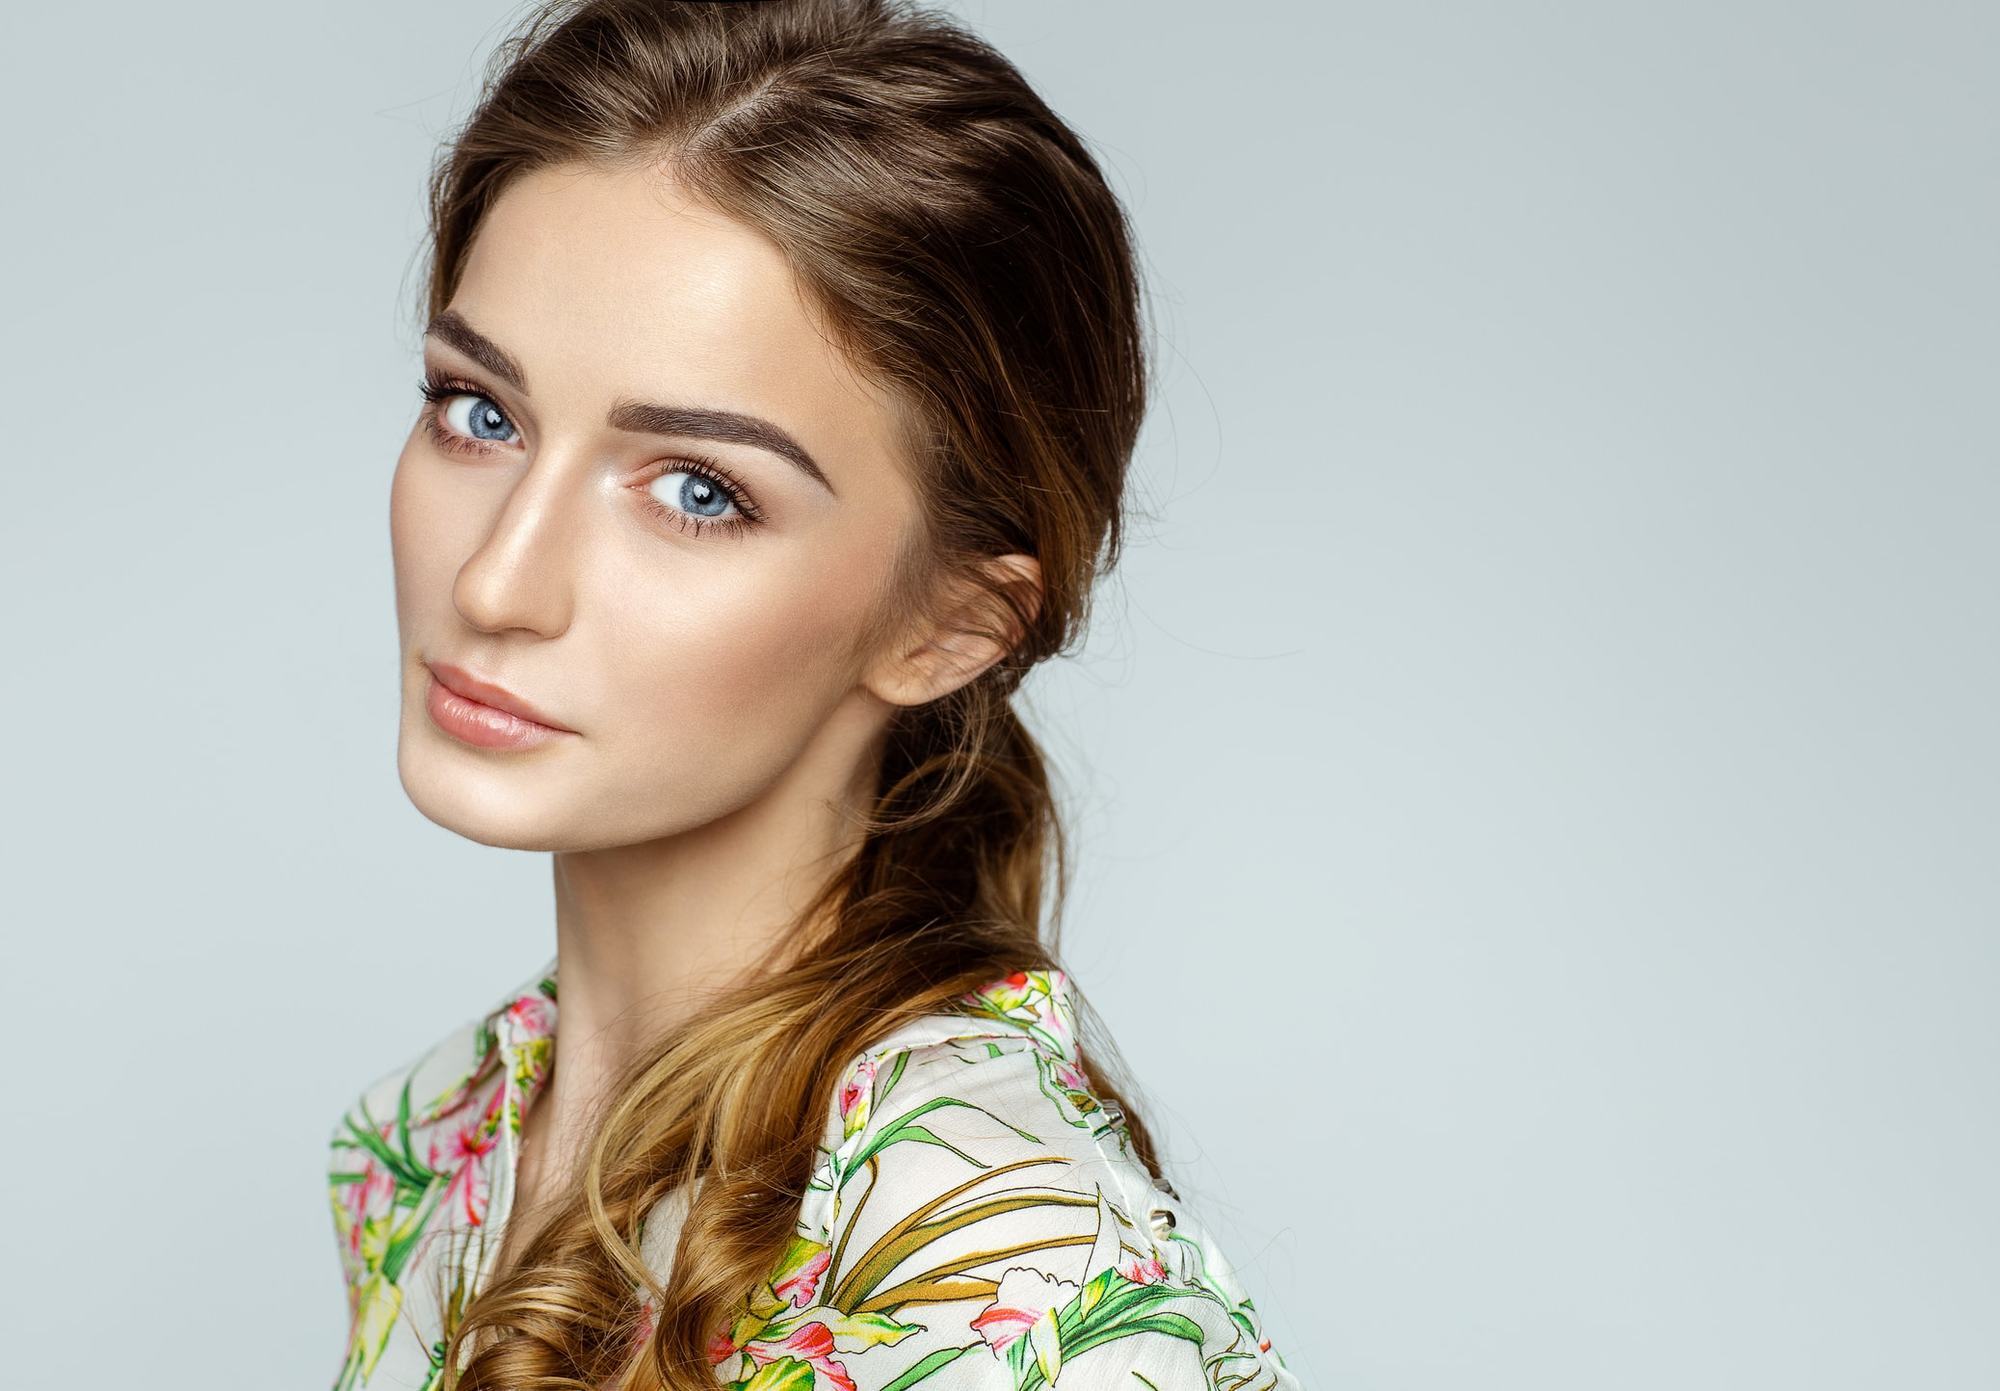 hairstyles for oblong faces tousled ponytail